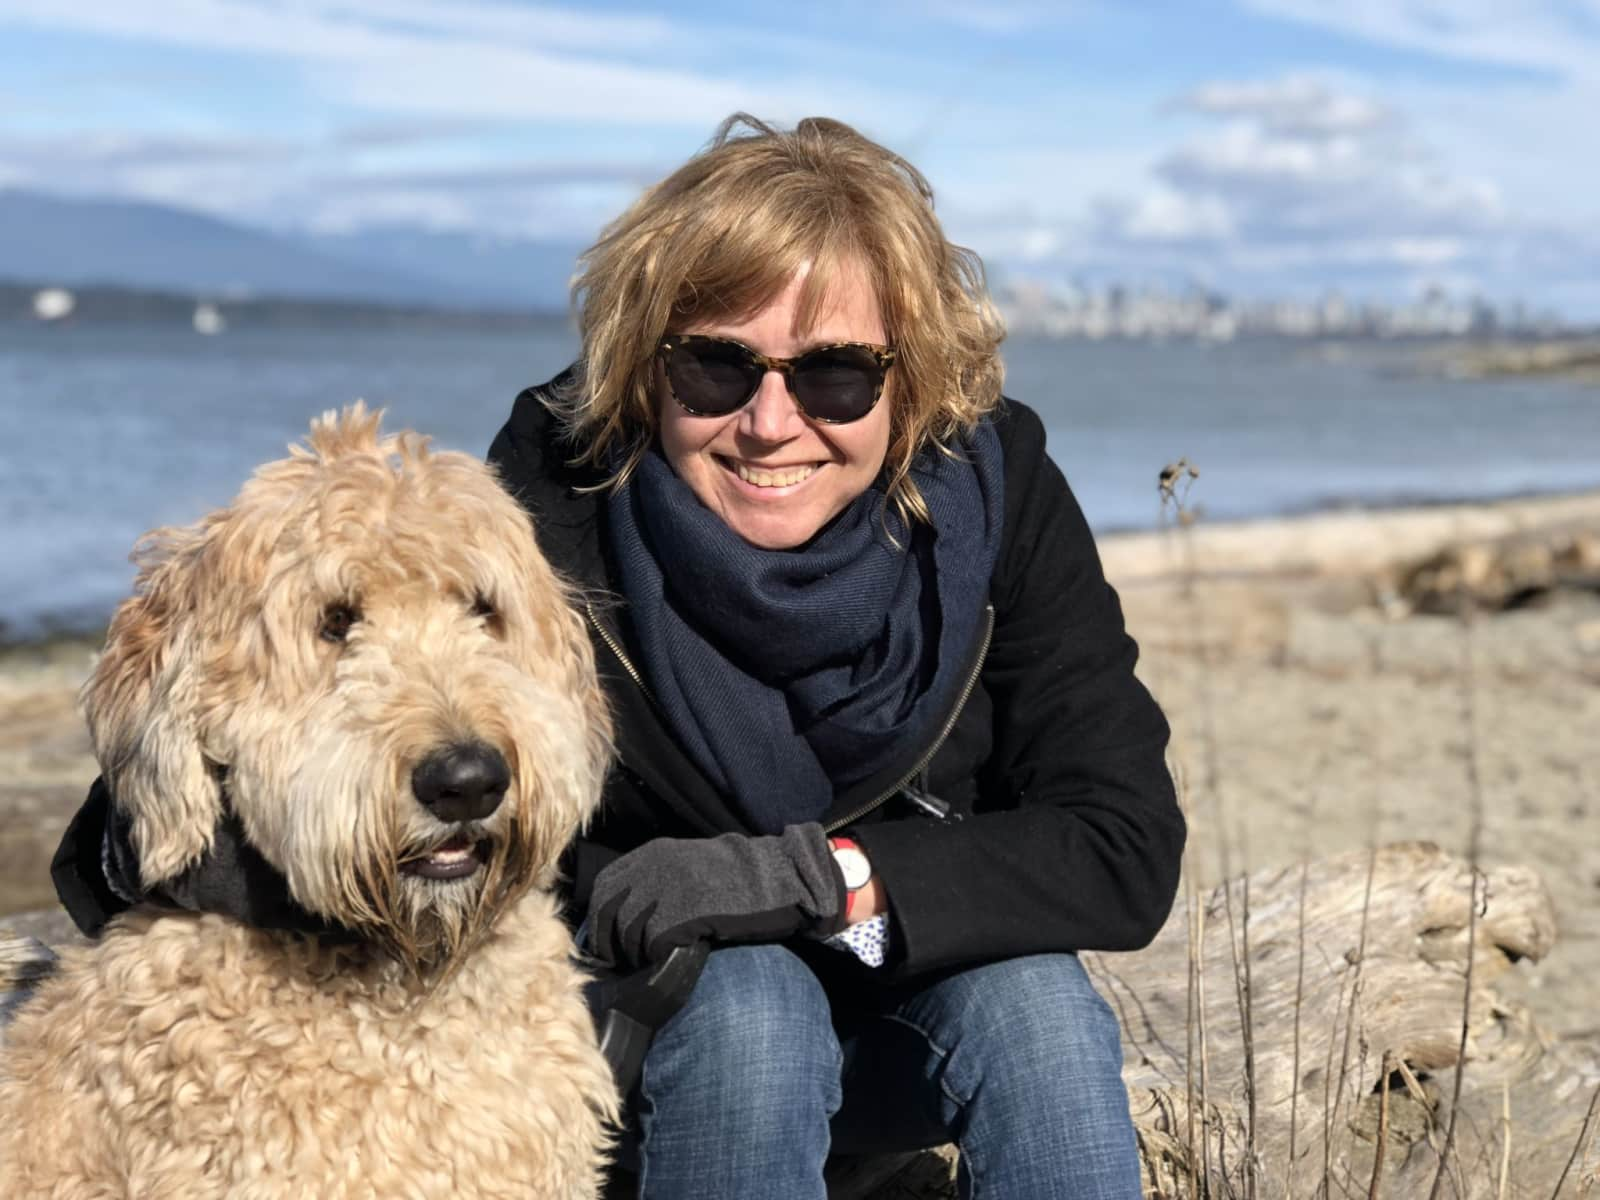 Martine & Jodey from Vancouver, British Columbia, Canada